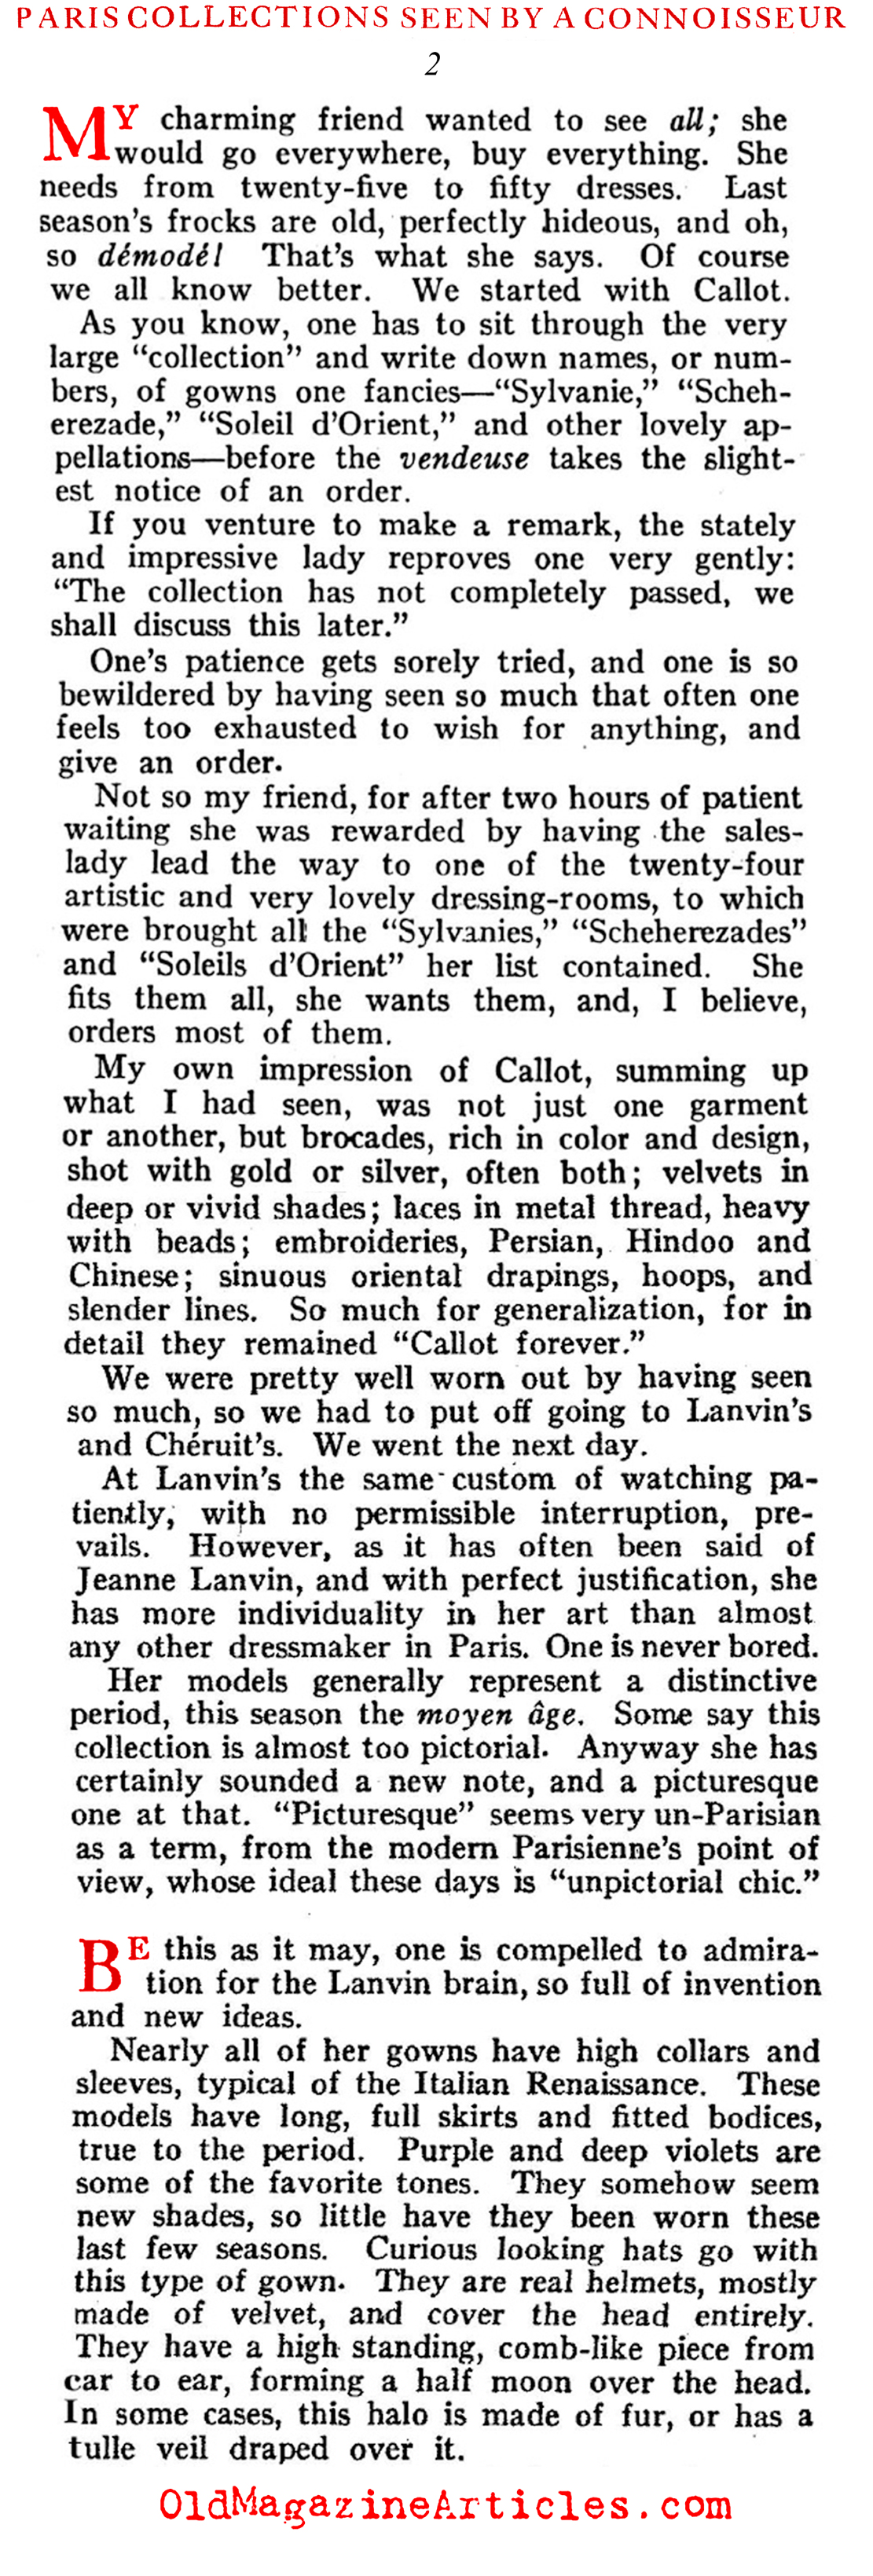 Baron Adolf de Meyer and the Paris Collections of 1922 (Harper's Bazaar, 1922)